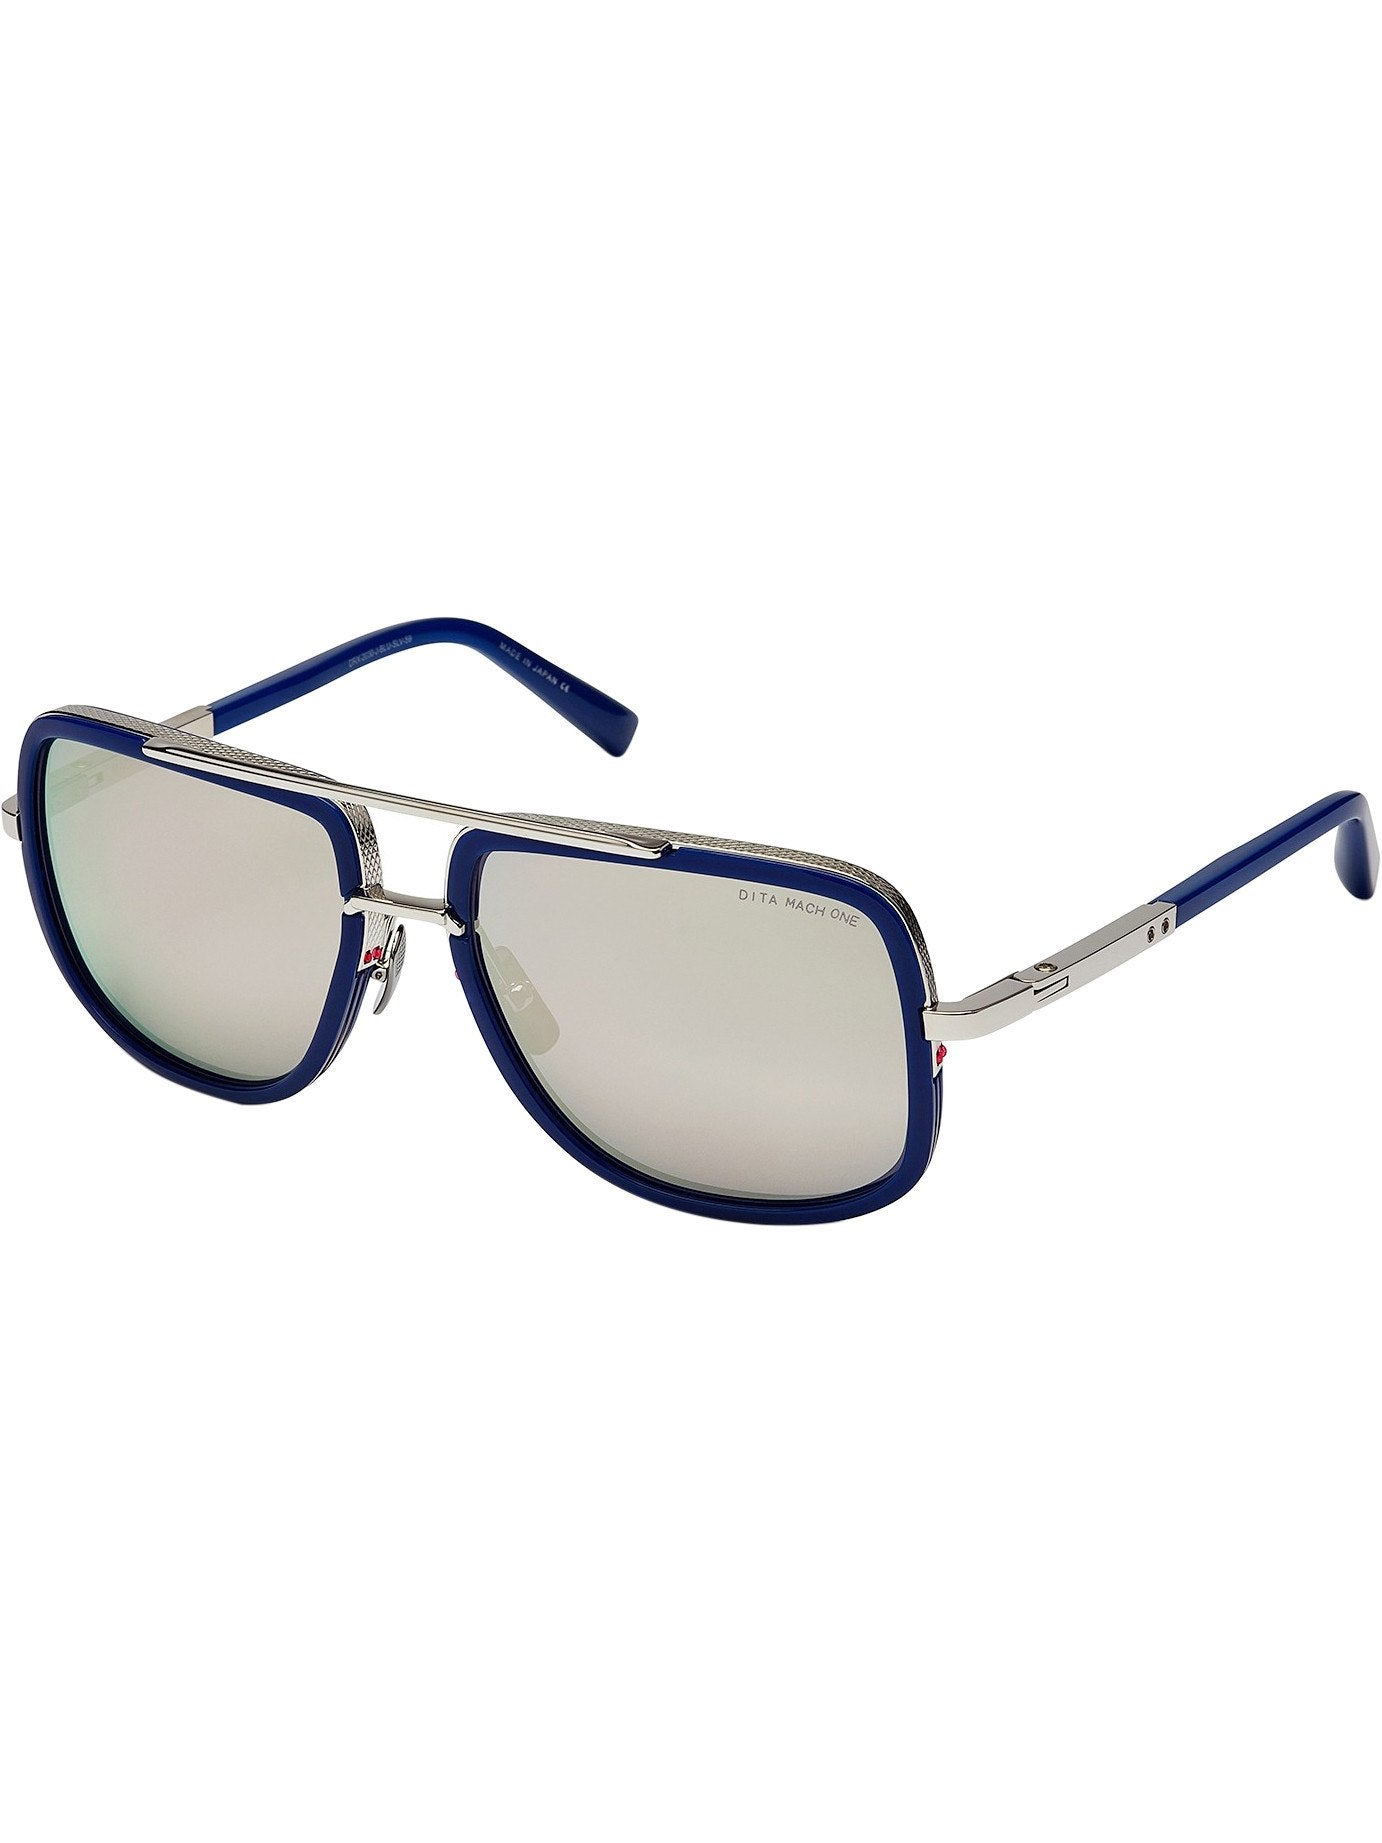 7efa2ba7d4e Sunglasses - Dita Mach One DRX-2030-H Sunglasses